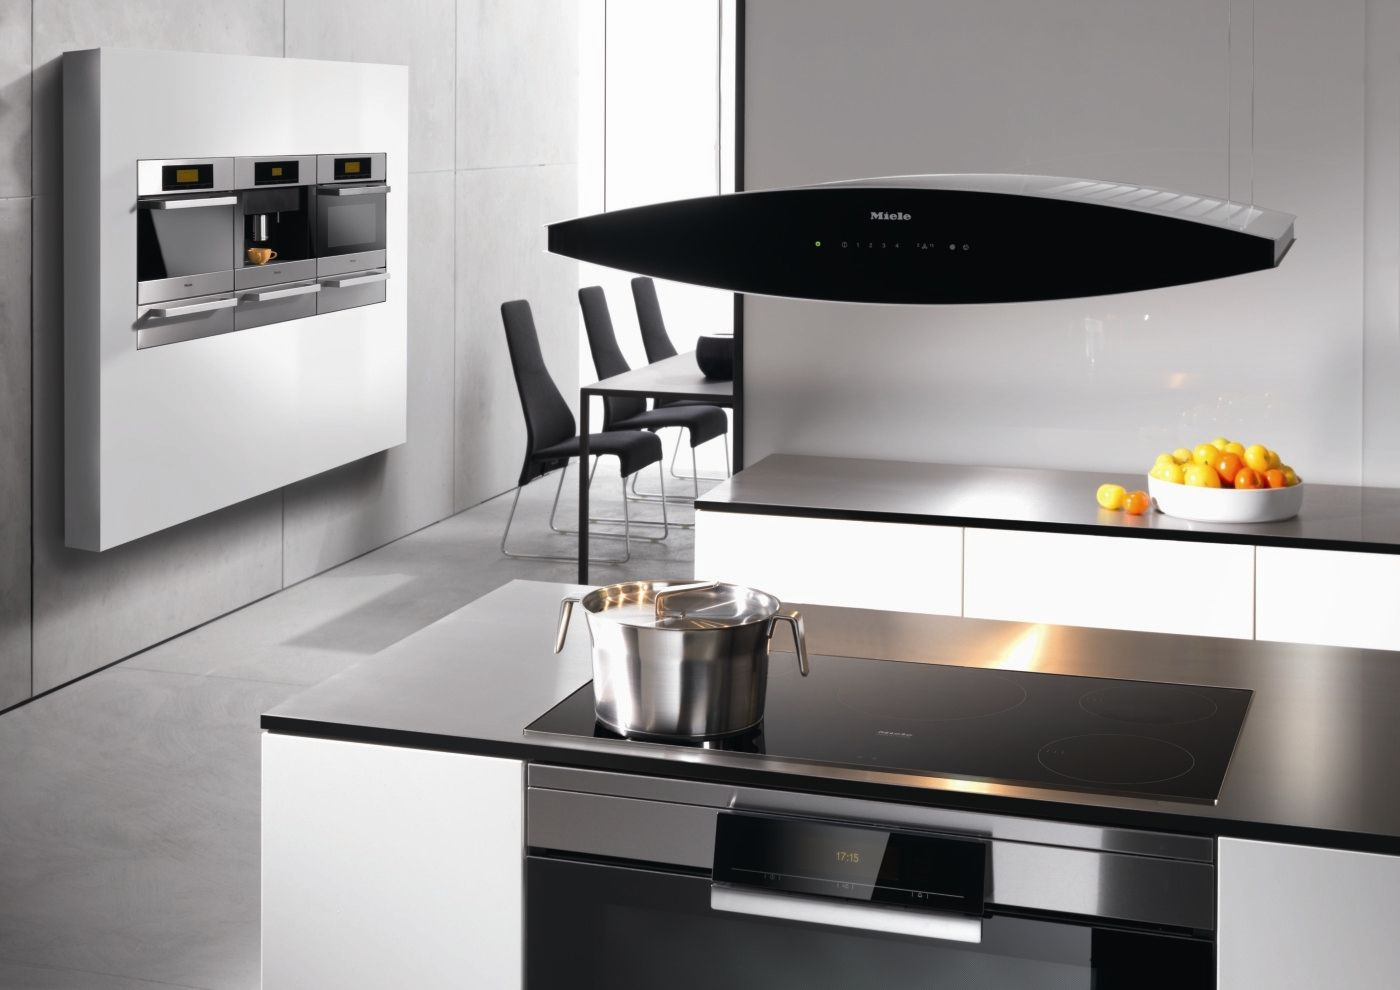 Find The Best Kitchen Appliances Tools Bakeware And Cookware At Custom Miele Kitchens Design Inspiration Design